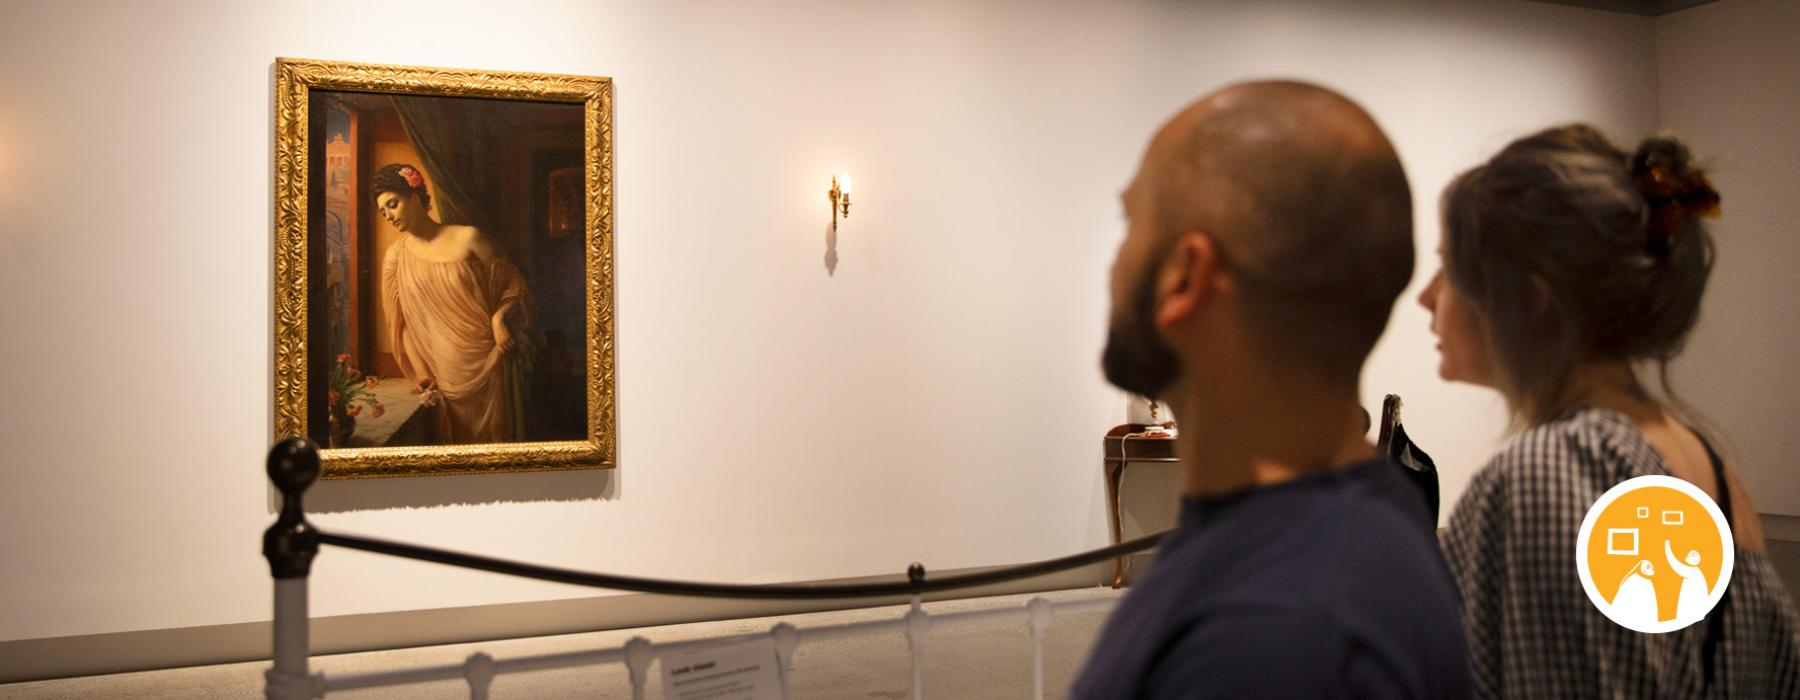 two people looking at a gilt-framed painting on a wall